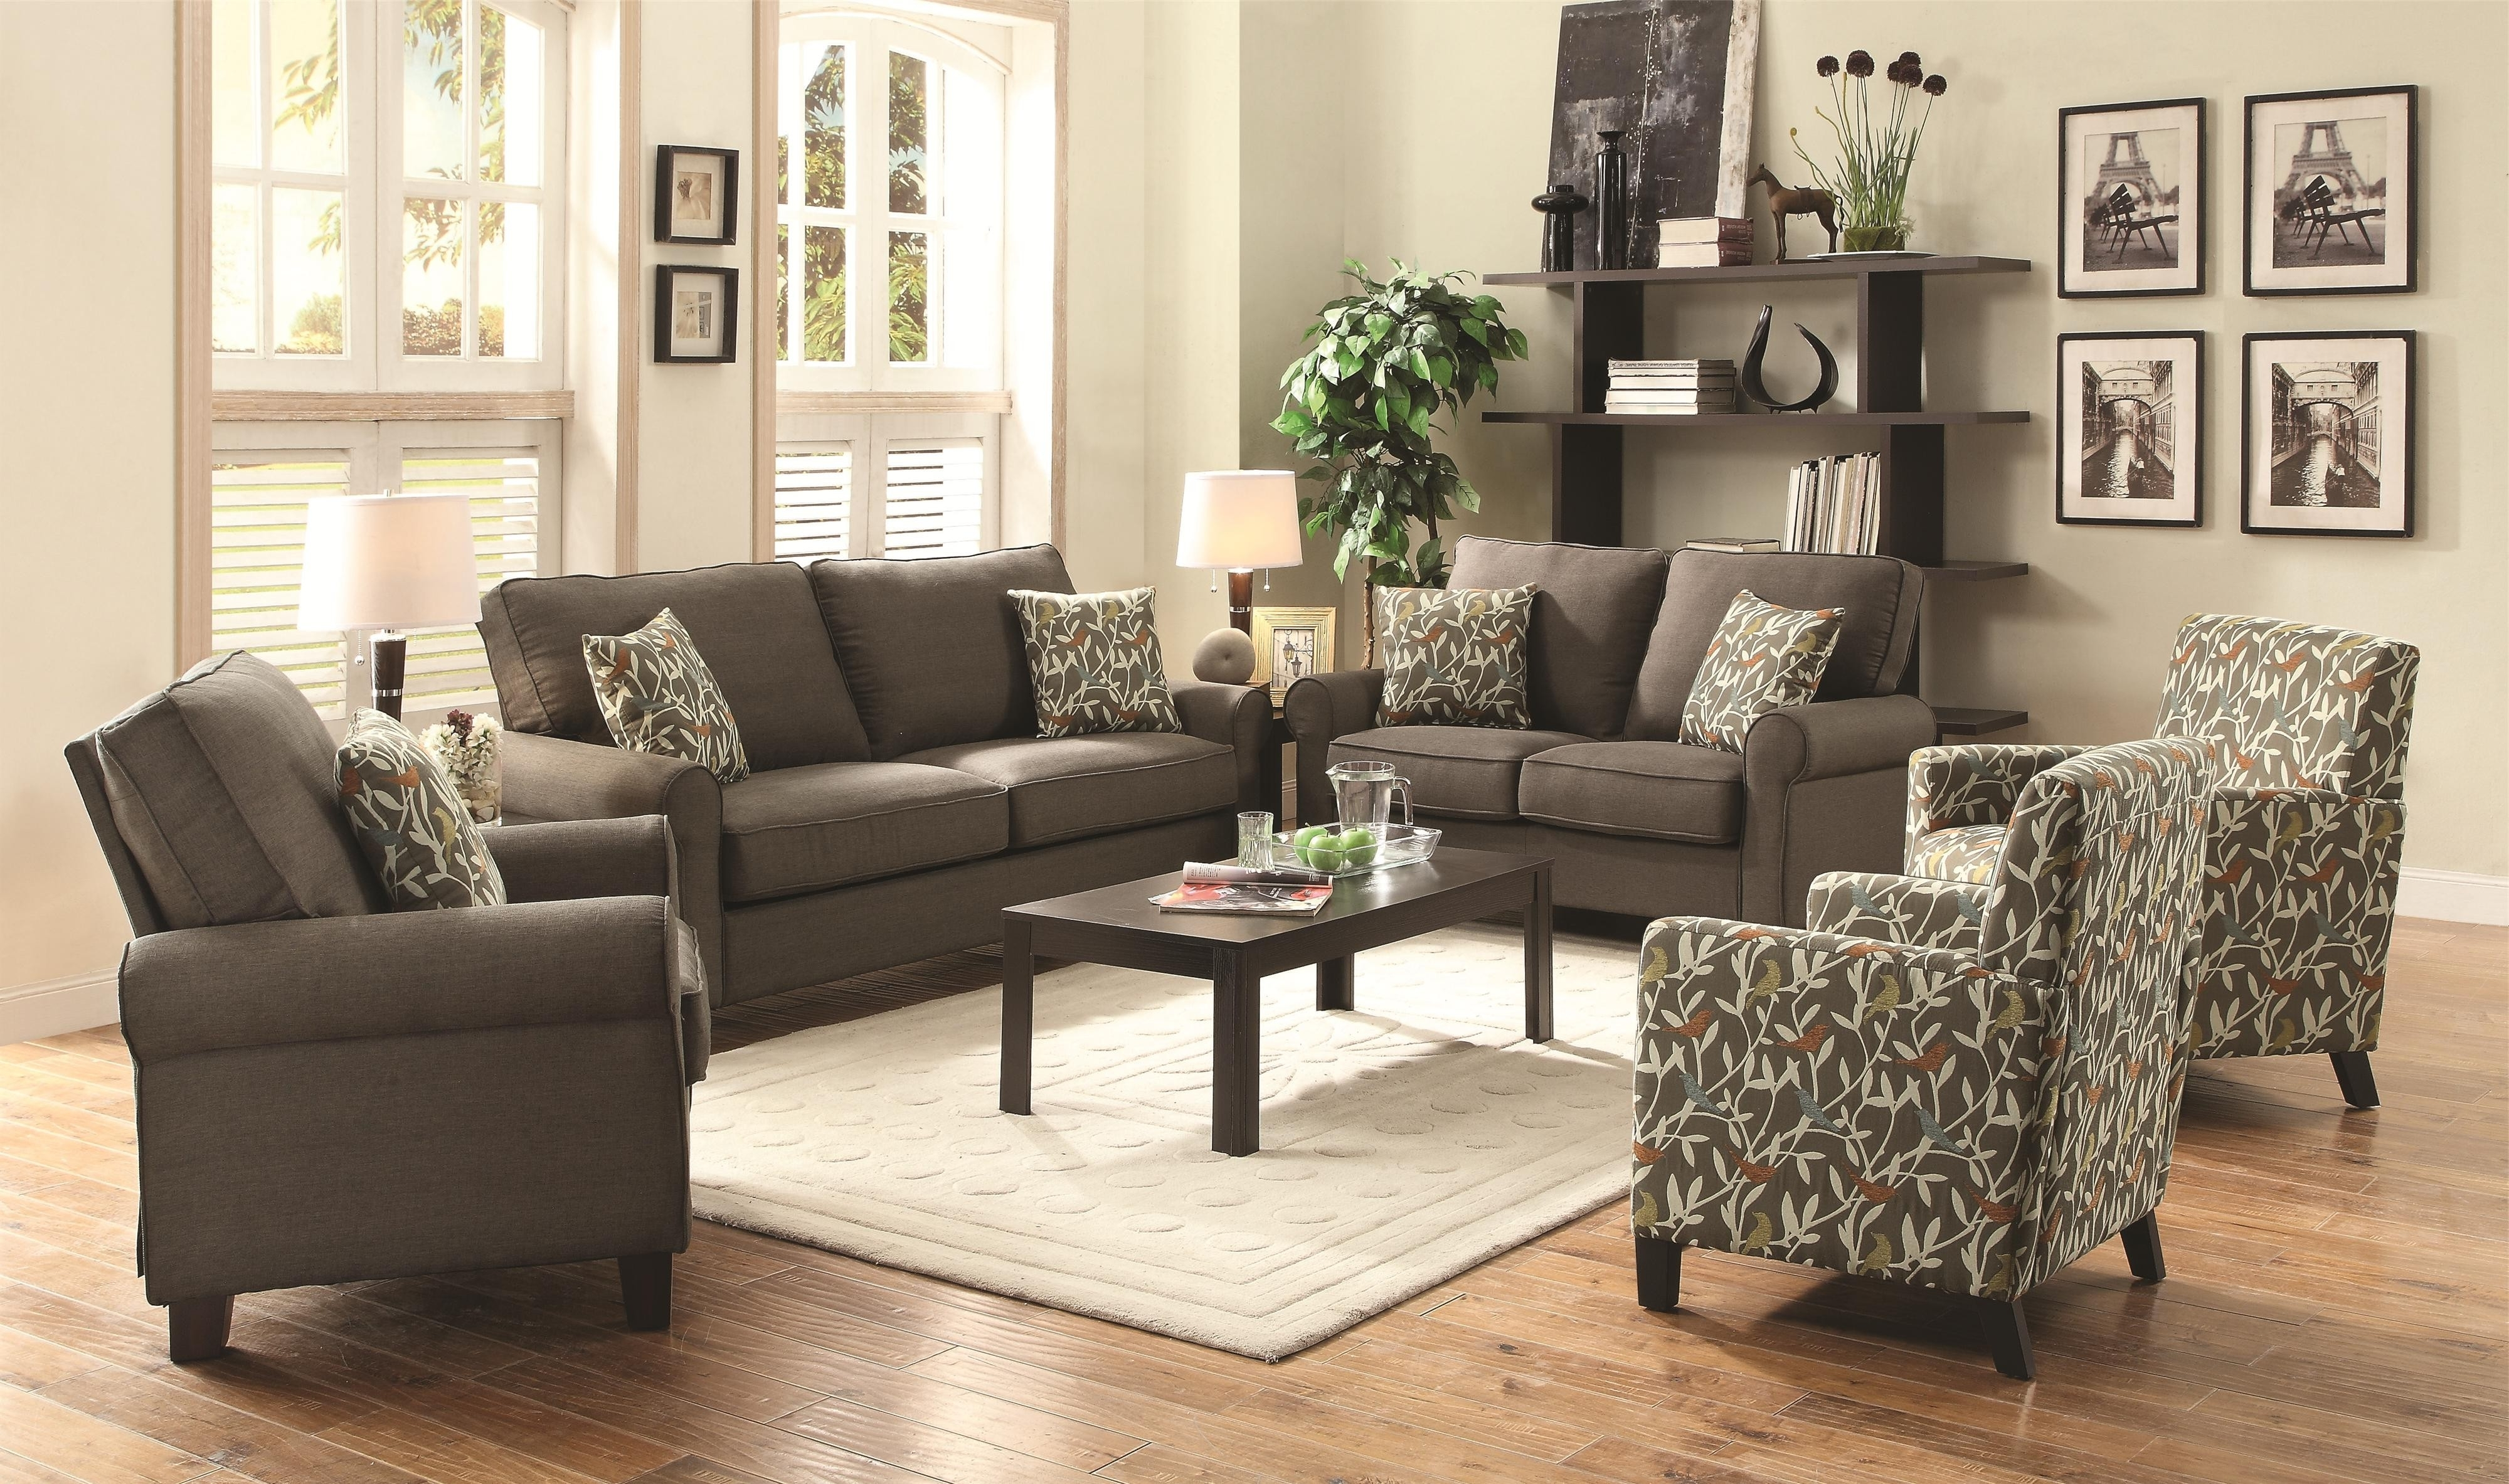 Casual Sofas And Chairs With Regard To Popular Casual Sofas And Chairs – Fjellkjeden (View 5 of 15)